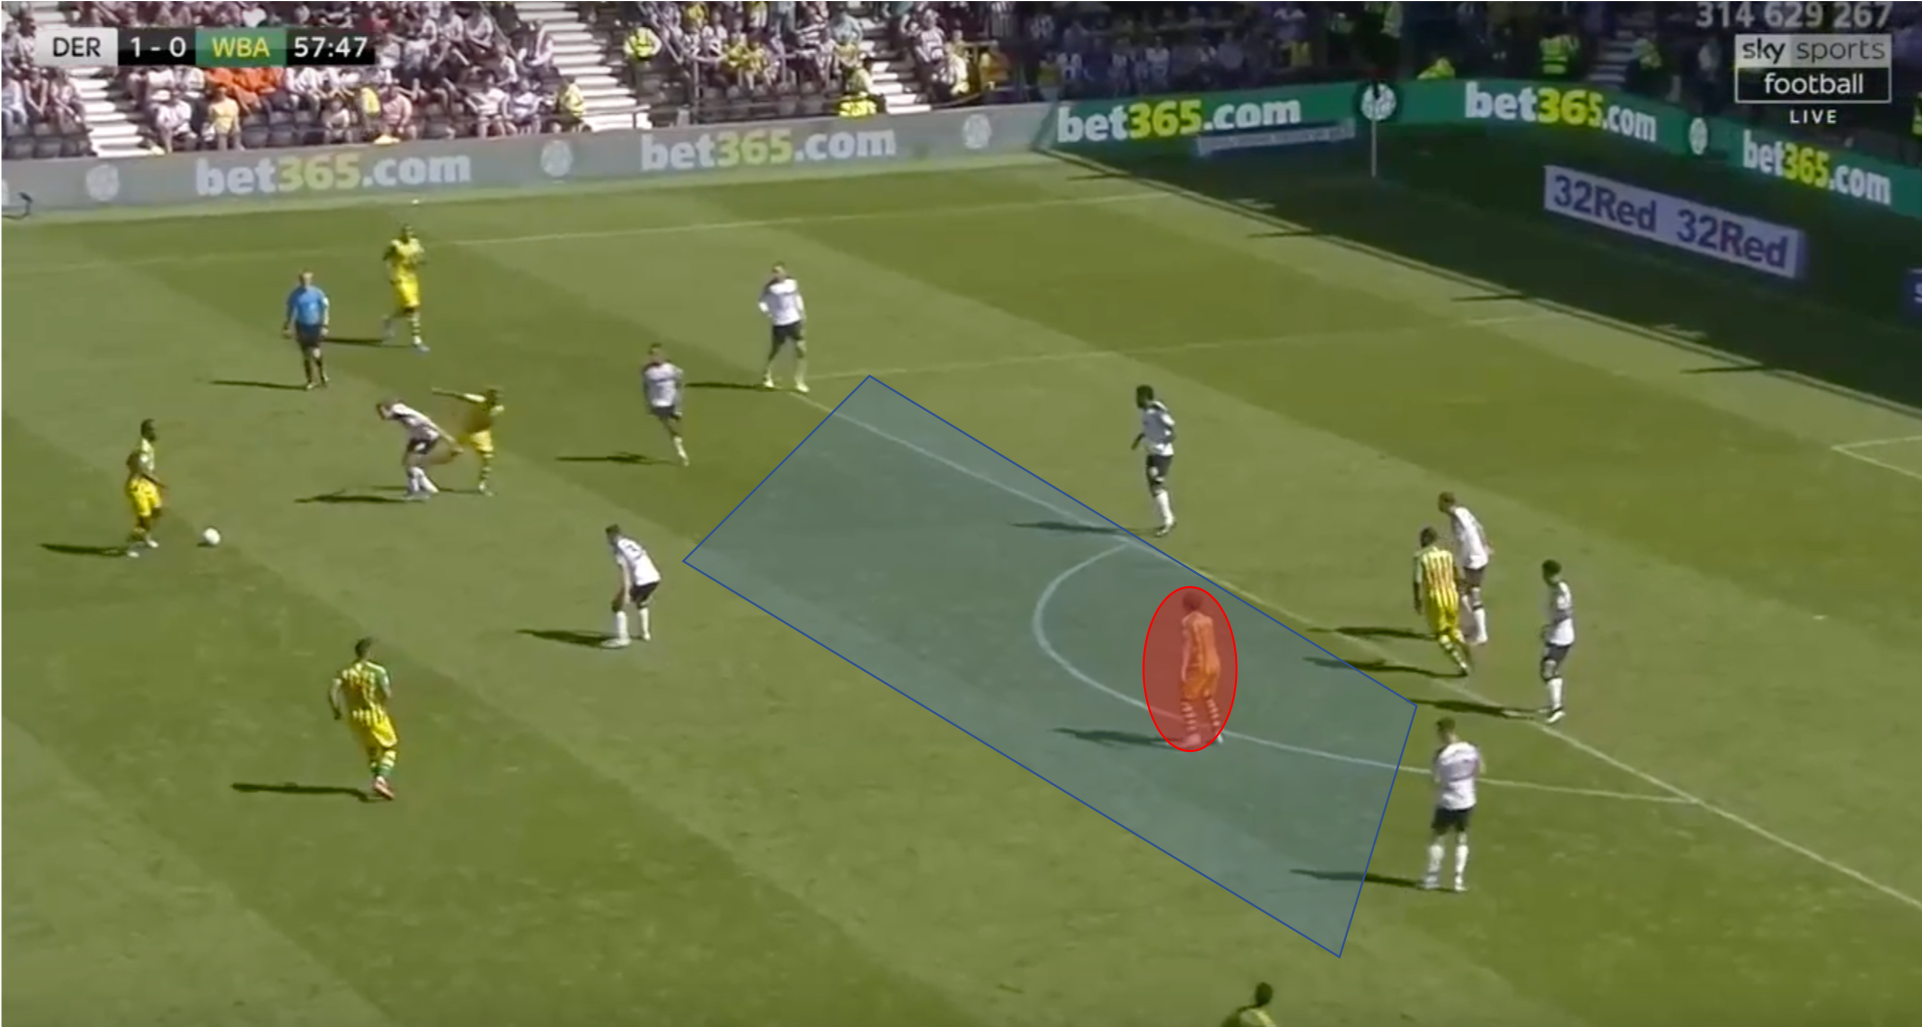 EFL Championship 2019/20: Derby County vs West Bromwich Albion - tactical analysis tactics